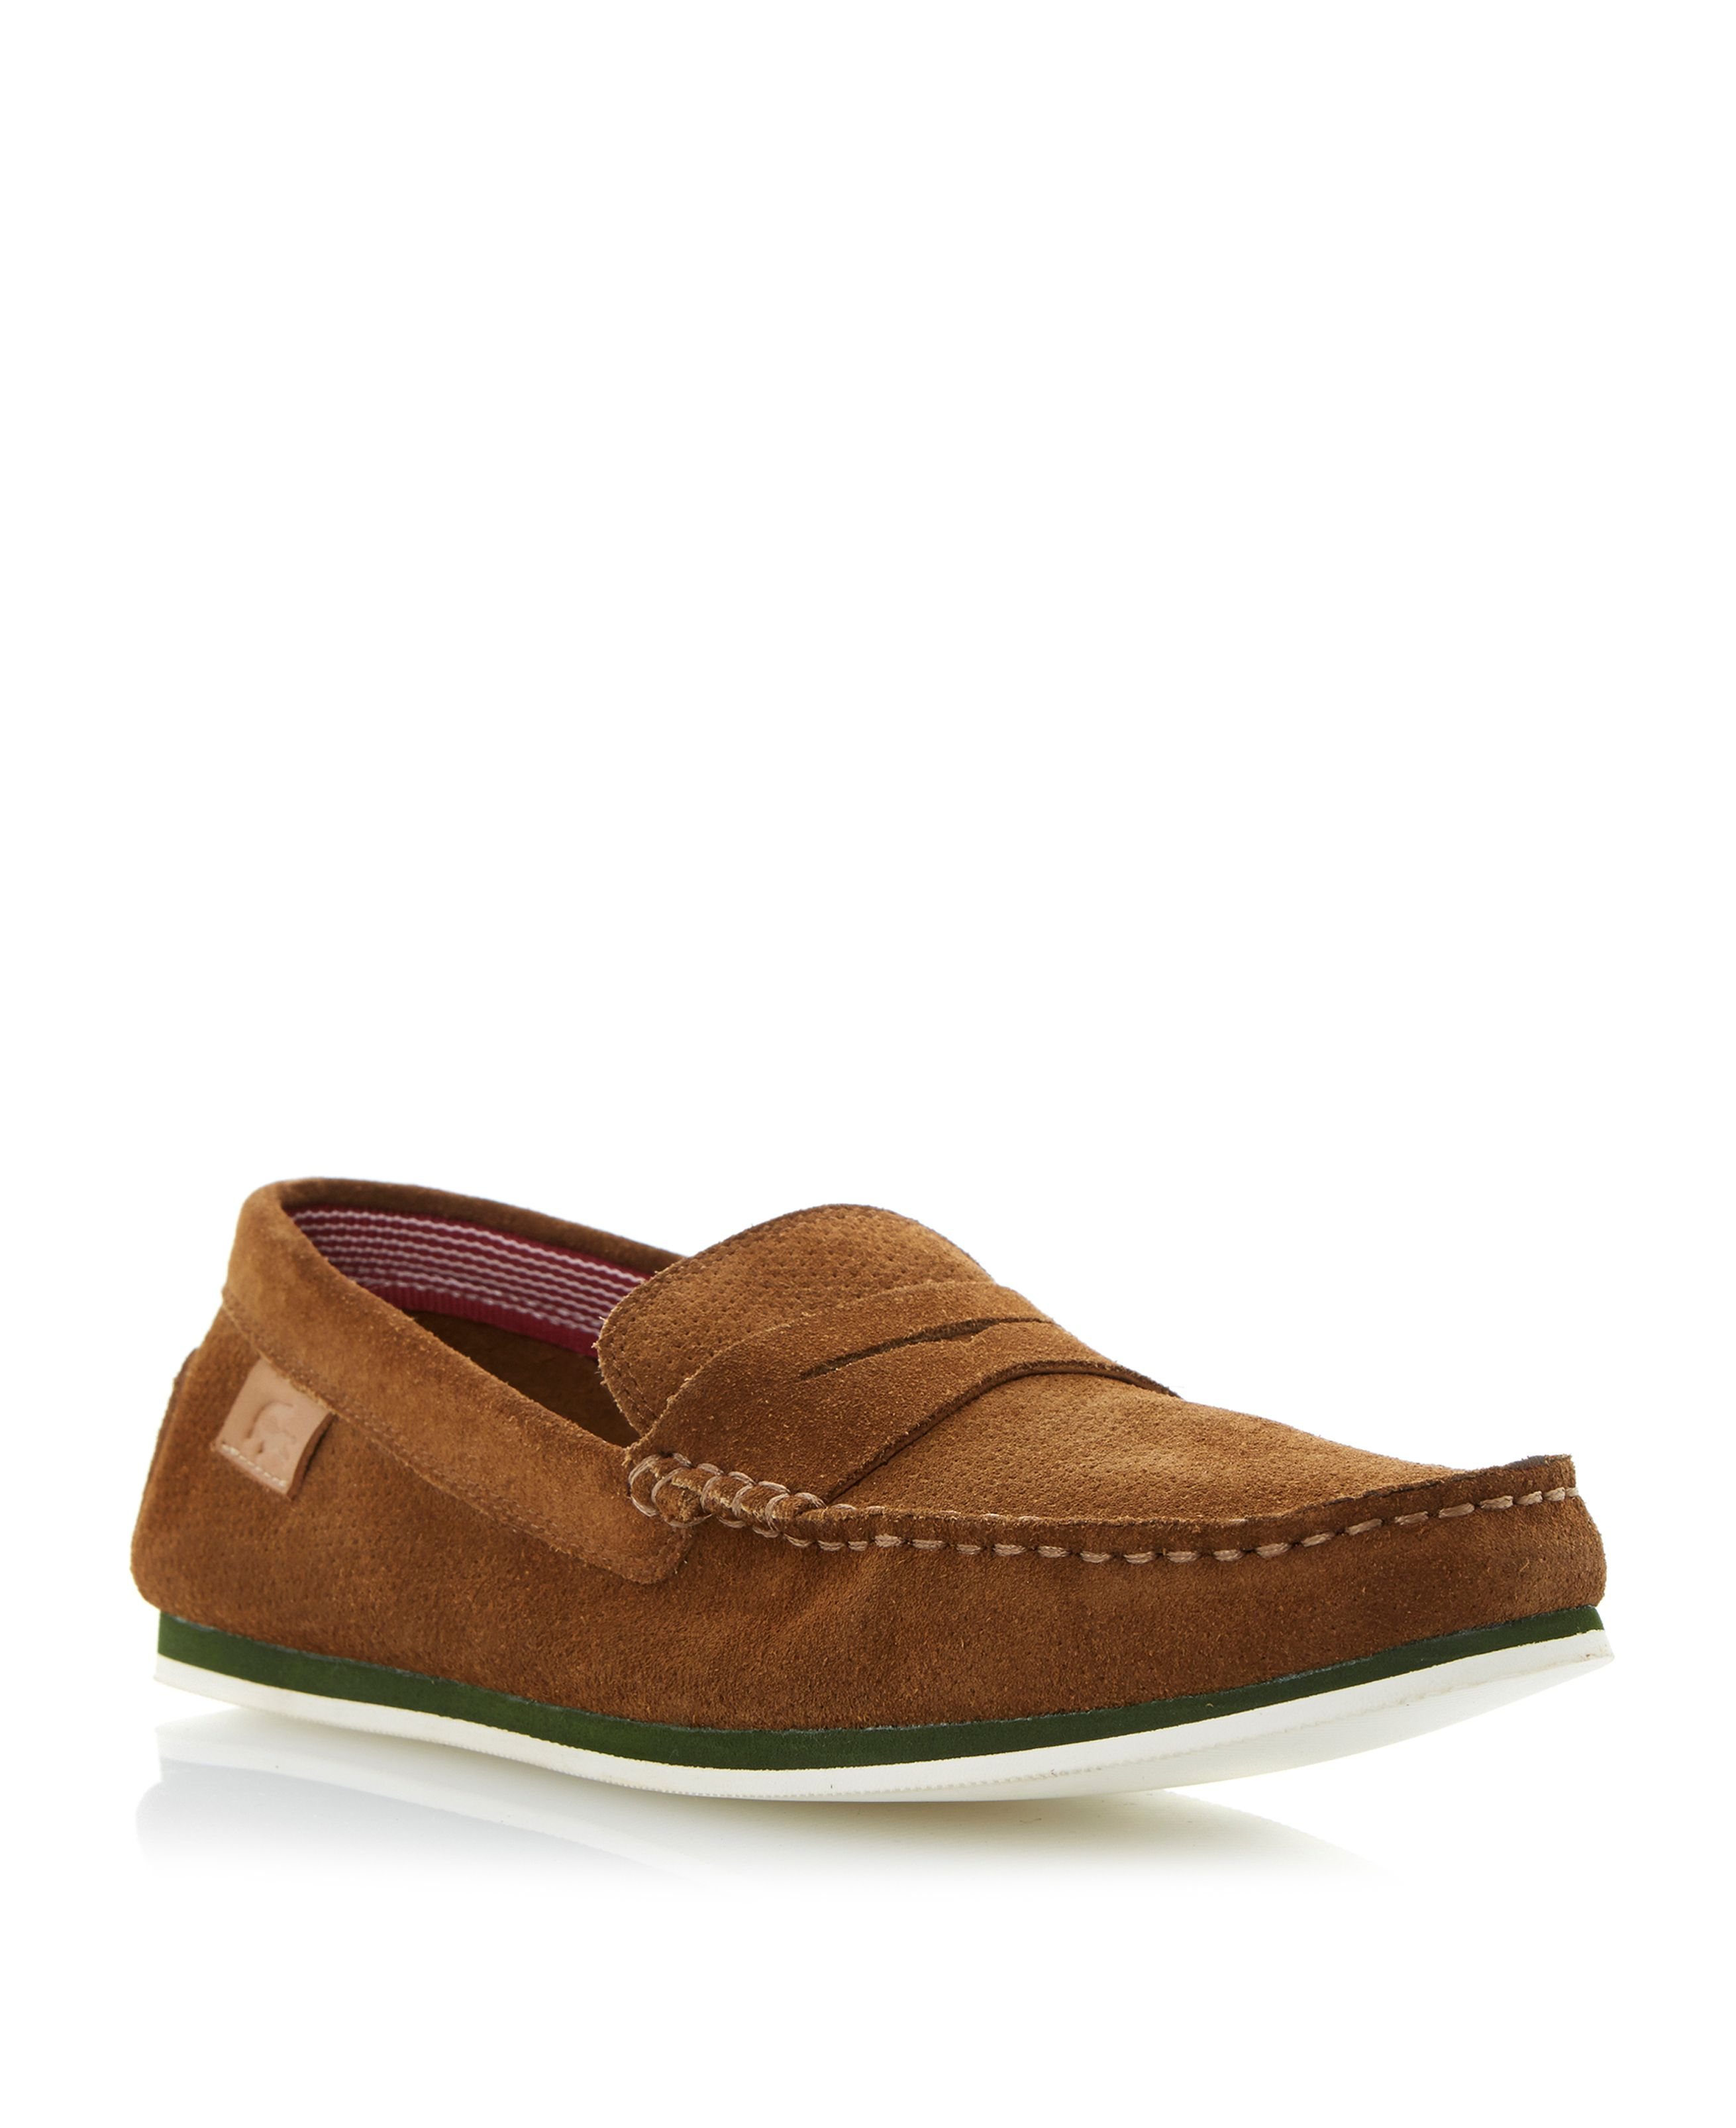 Chanler perforated apron loafers